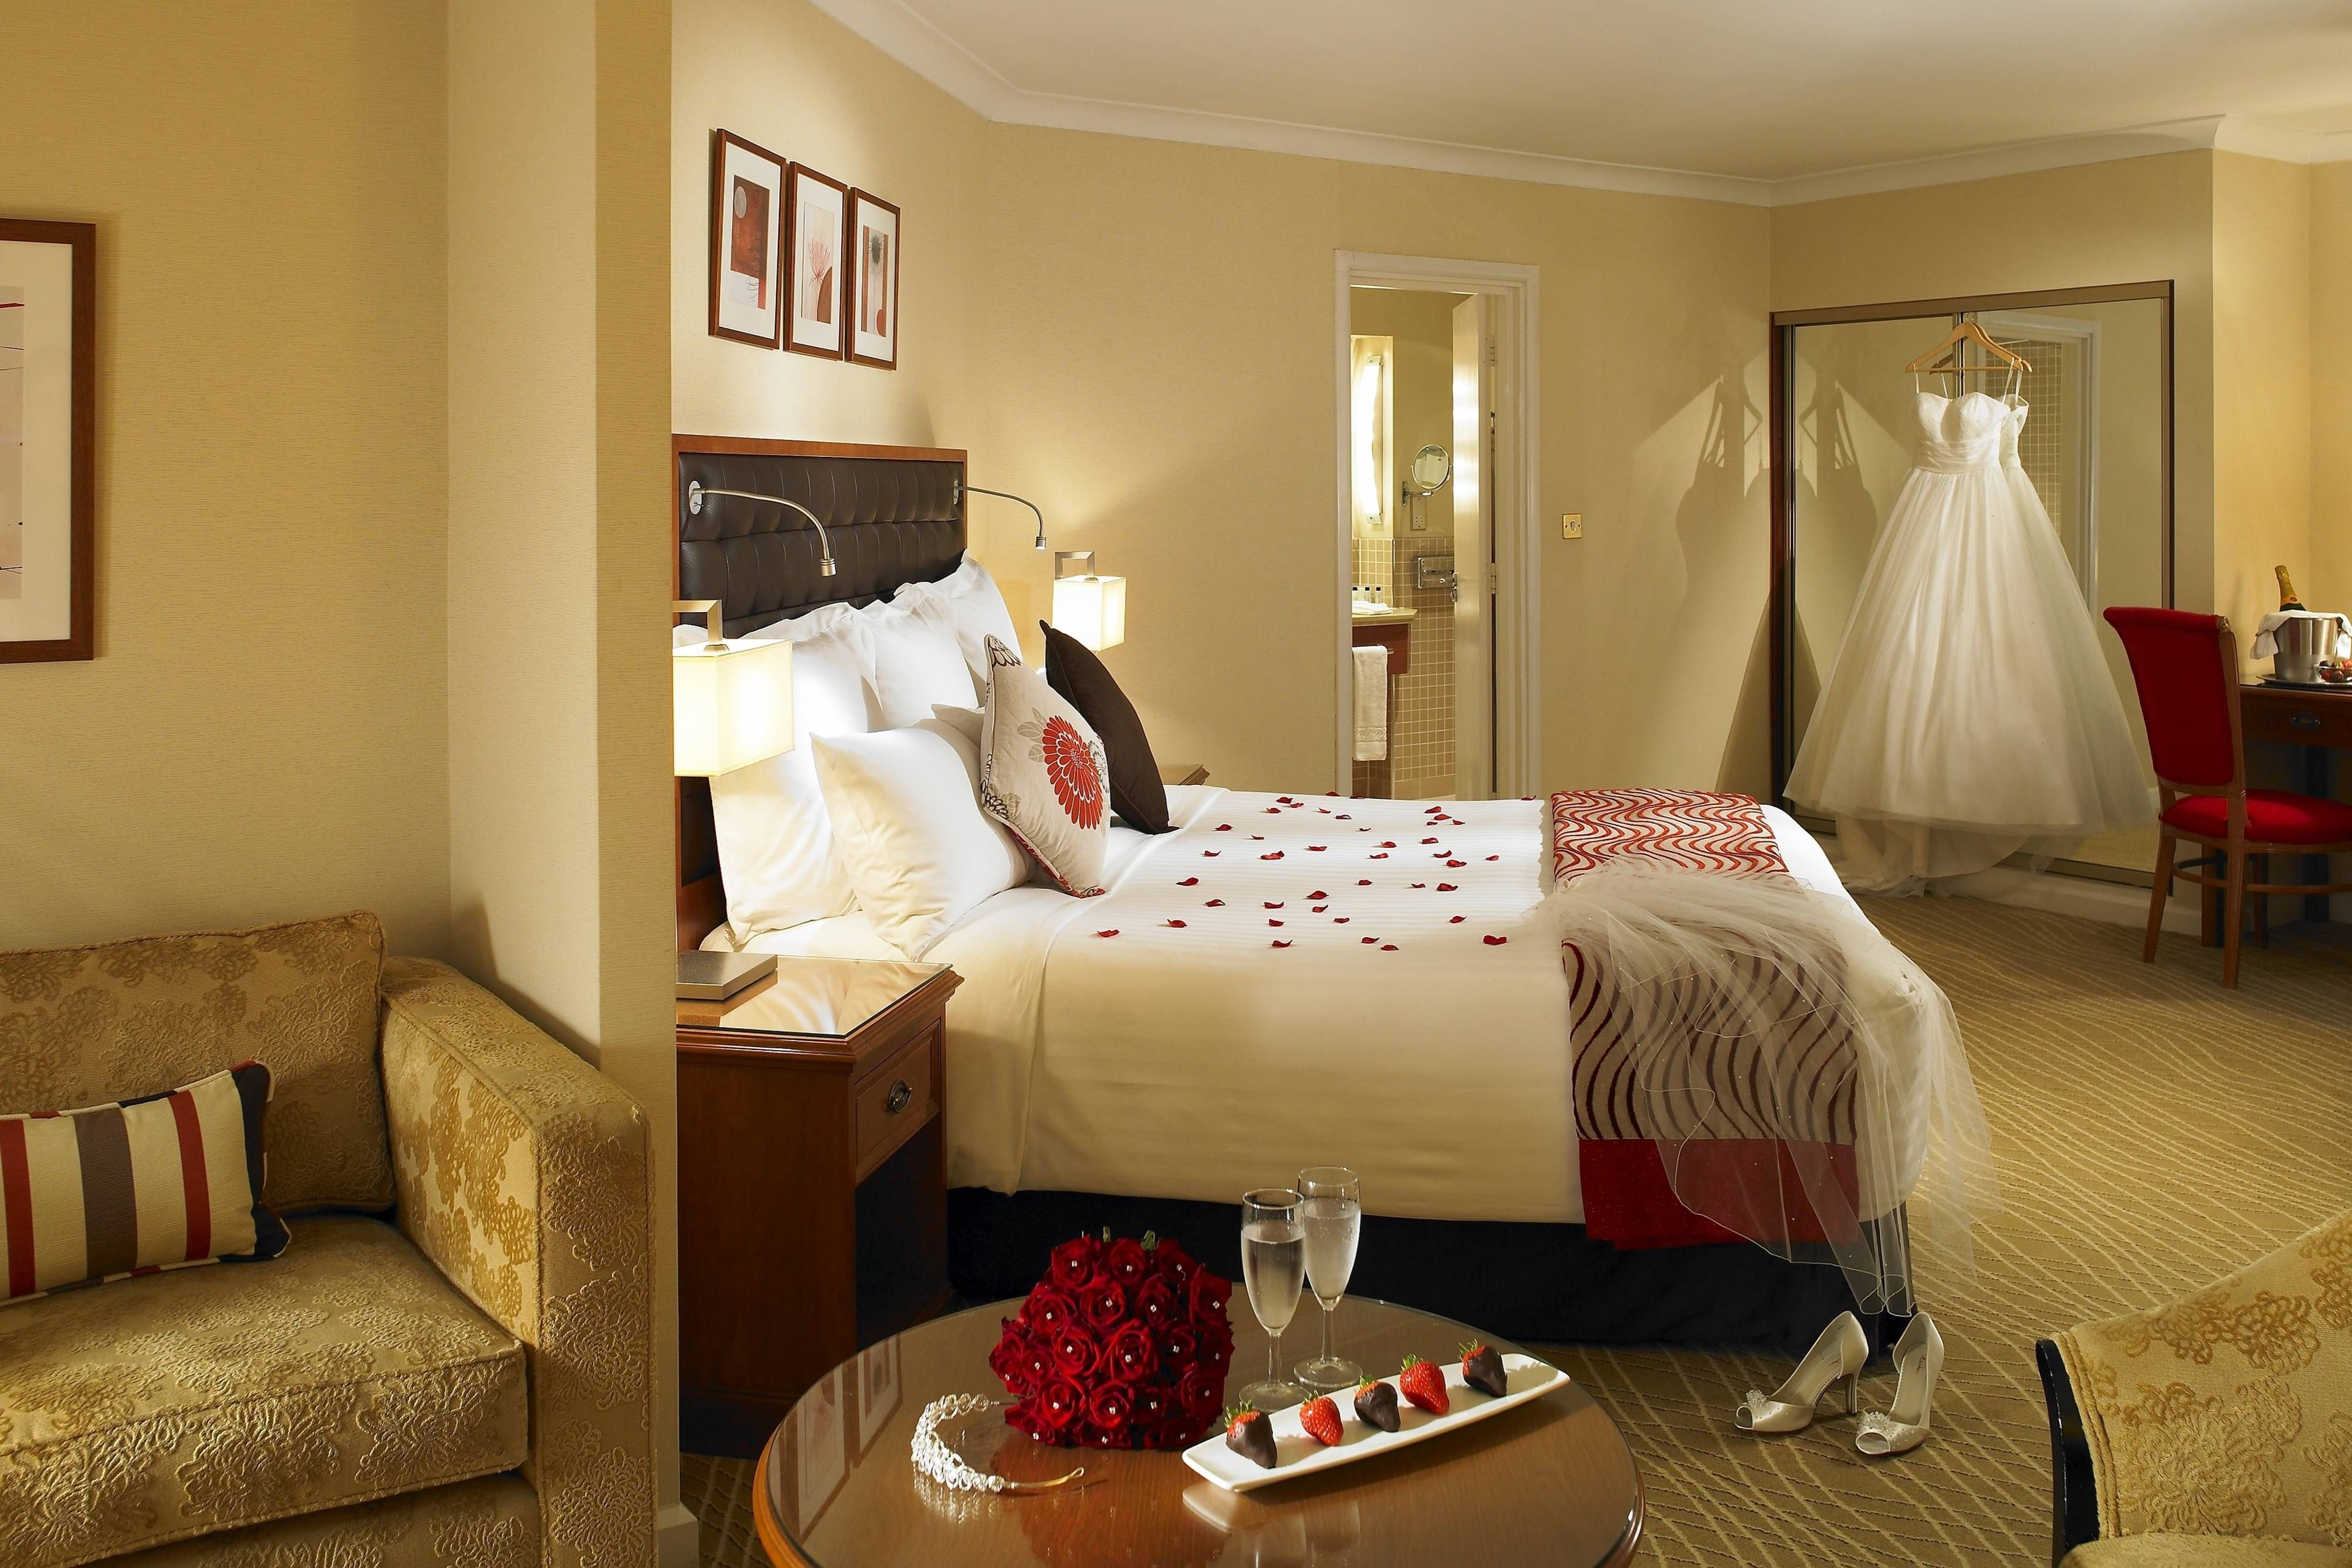 Waltham Abbey Marriott Hotel Junior Suite Holiday Travel Relax Marriott Hotels Hotel Hotel Wedding Venues